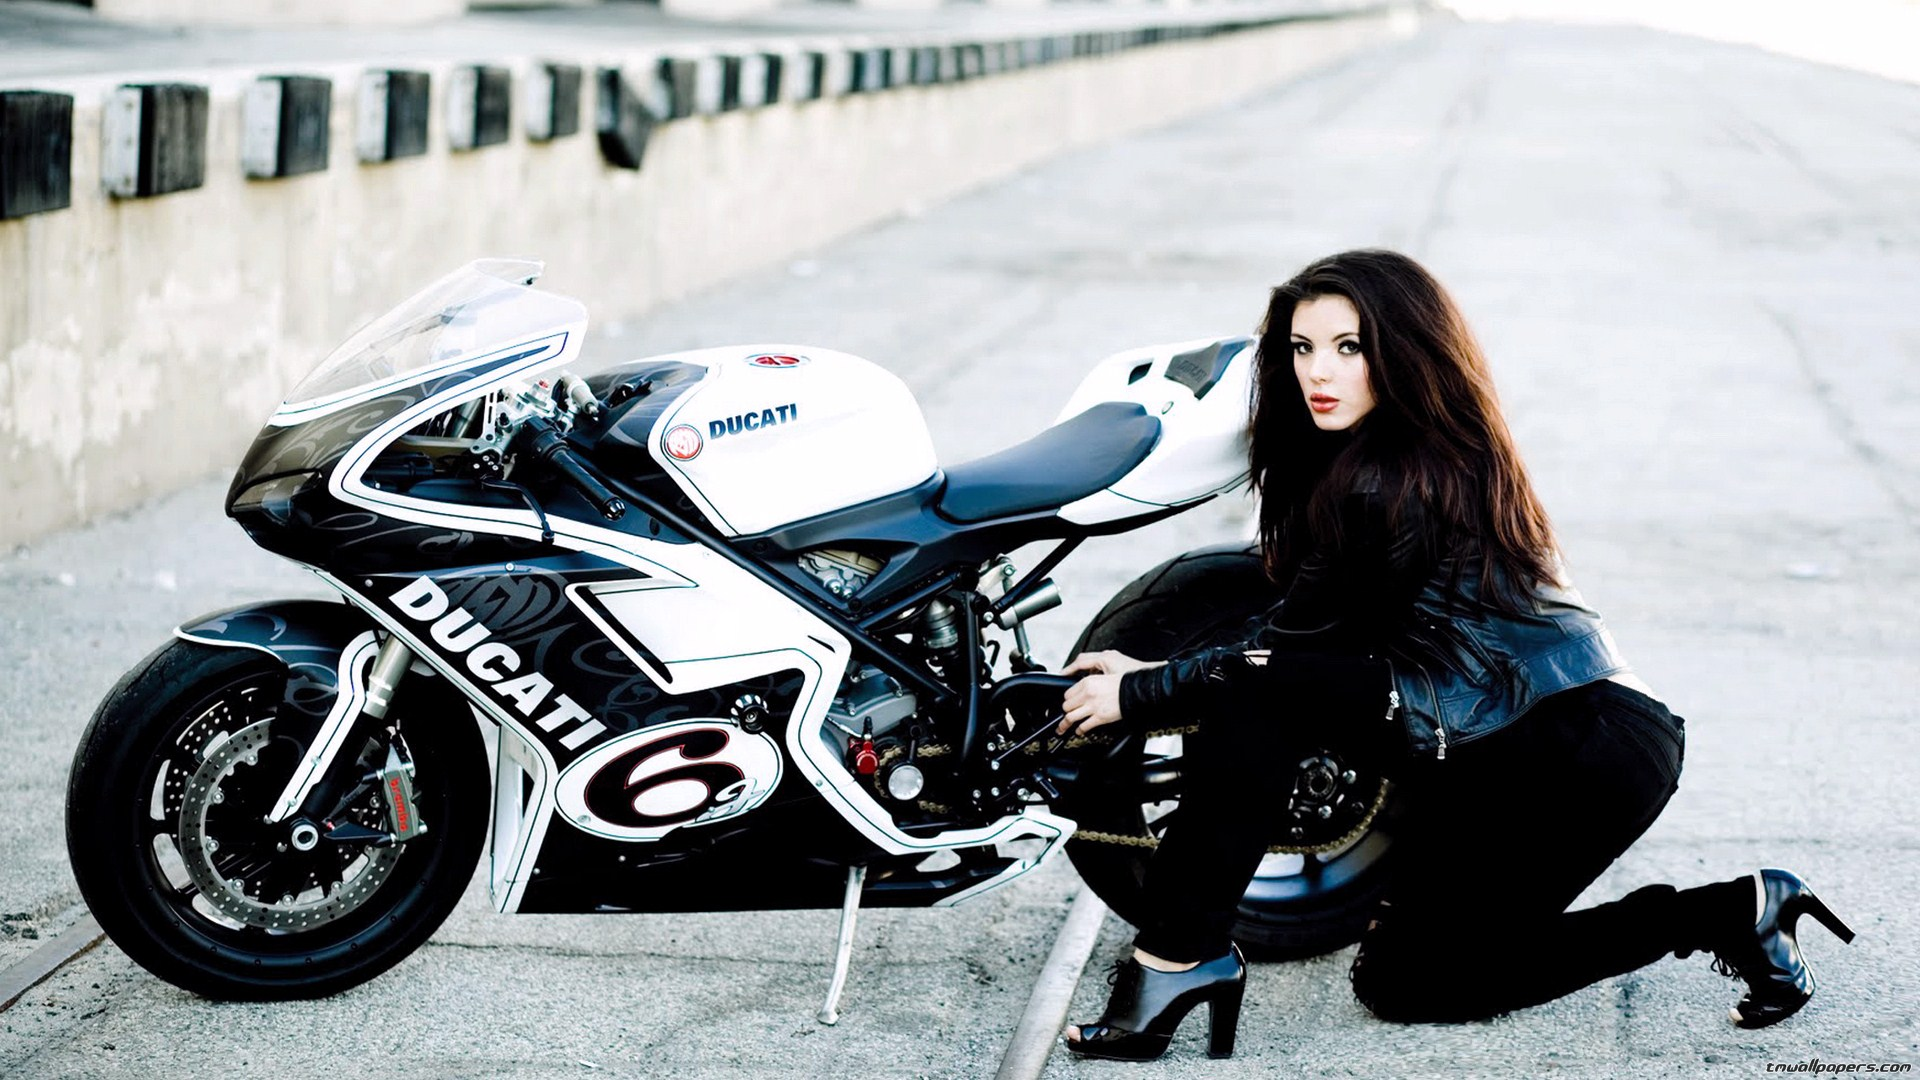 motorcycle girls wallpaper funny photos pictures images 2013 1920x1080